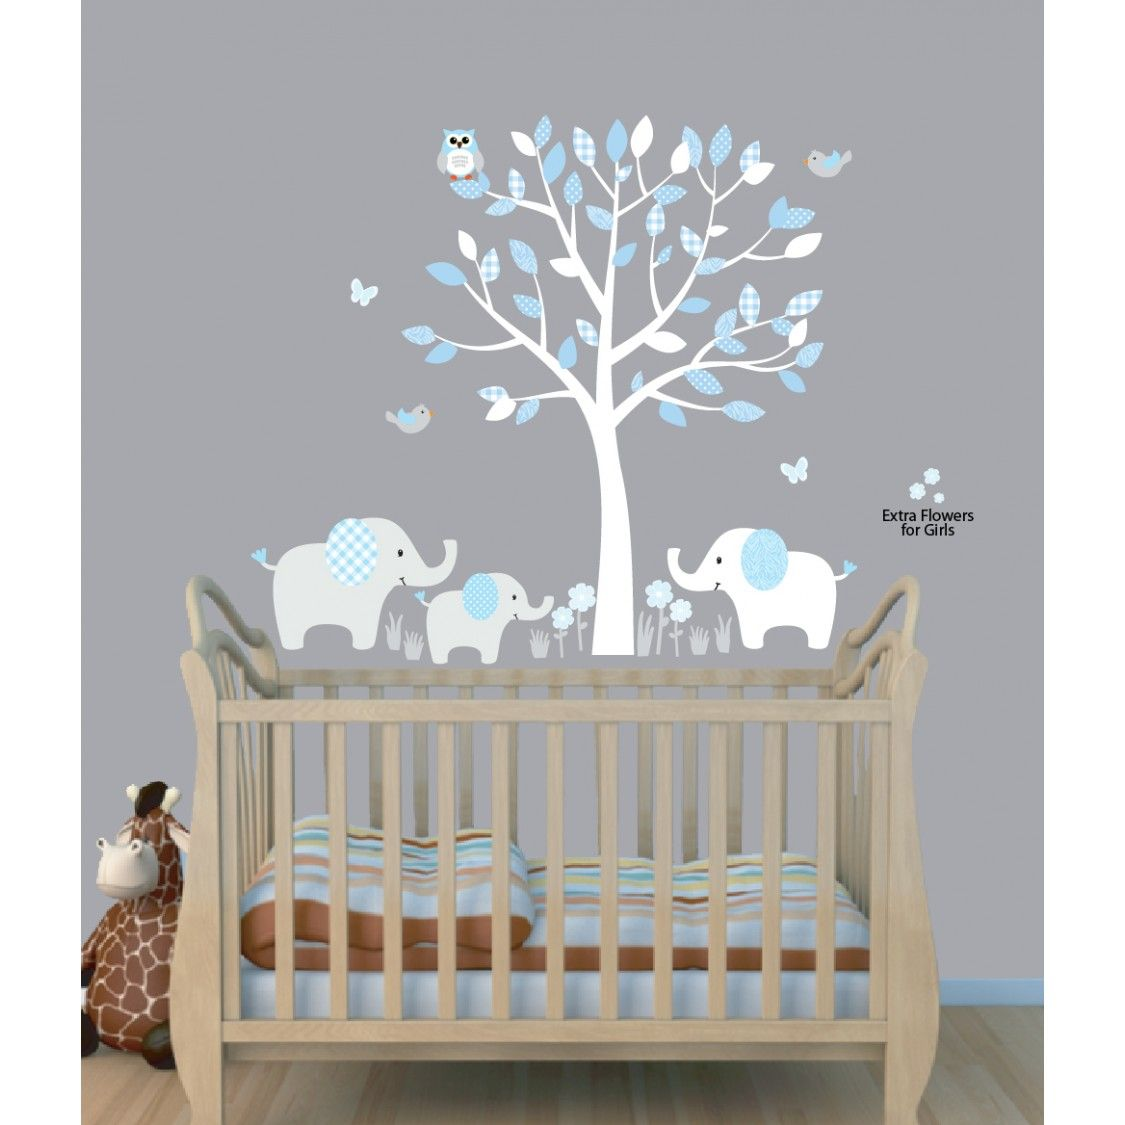 Baby Nursery Decor Elephants Below Beautiful Tree Baby